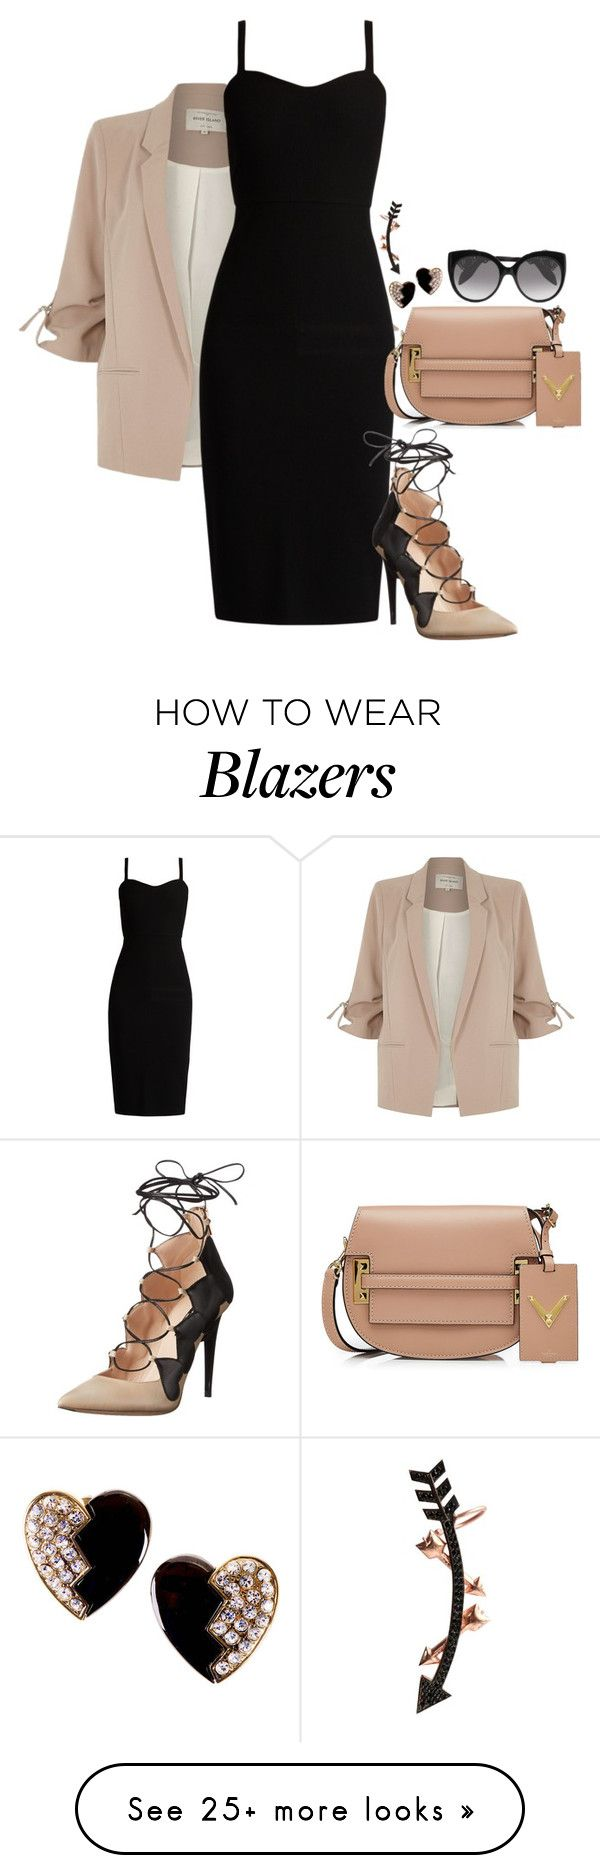 """Arsenic"" by chelsofly on Polyvore featuring River Island, MaxMara, Ruthie Davis, Valentino, Yves Saint Laurent, Alexander McQueen and Wild Hearts"